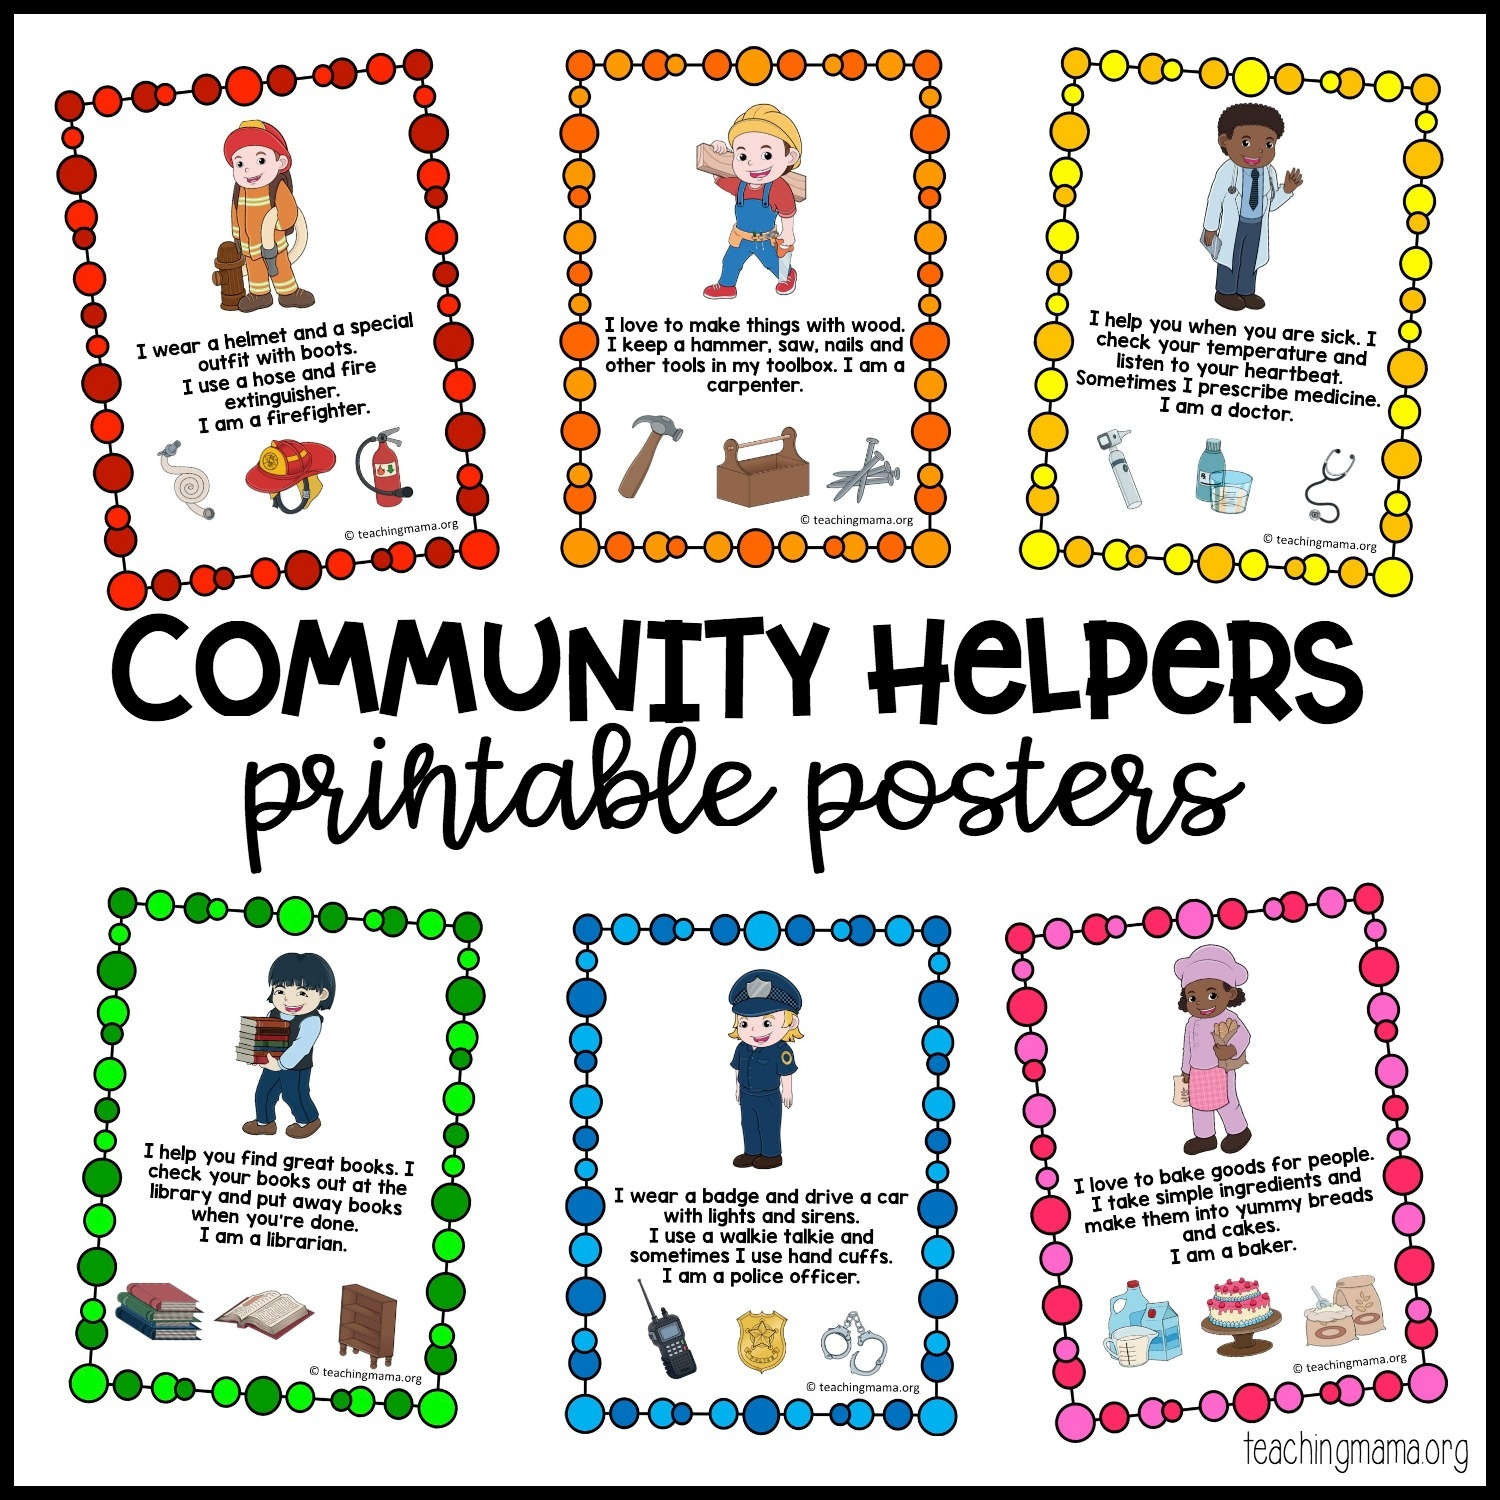 Community Helpers Printable Posters - Teaching Mama - Free Printable Preschool Posters